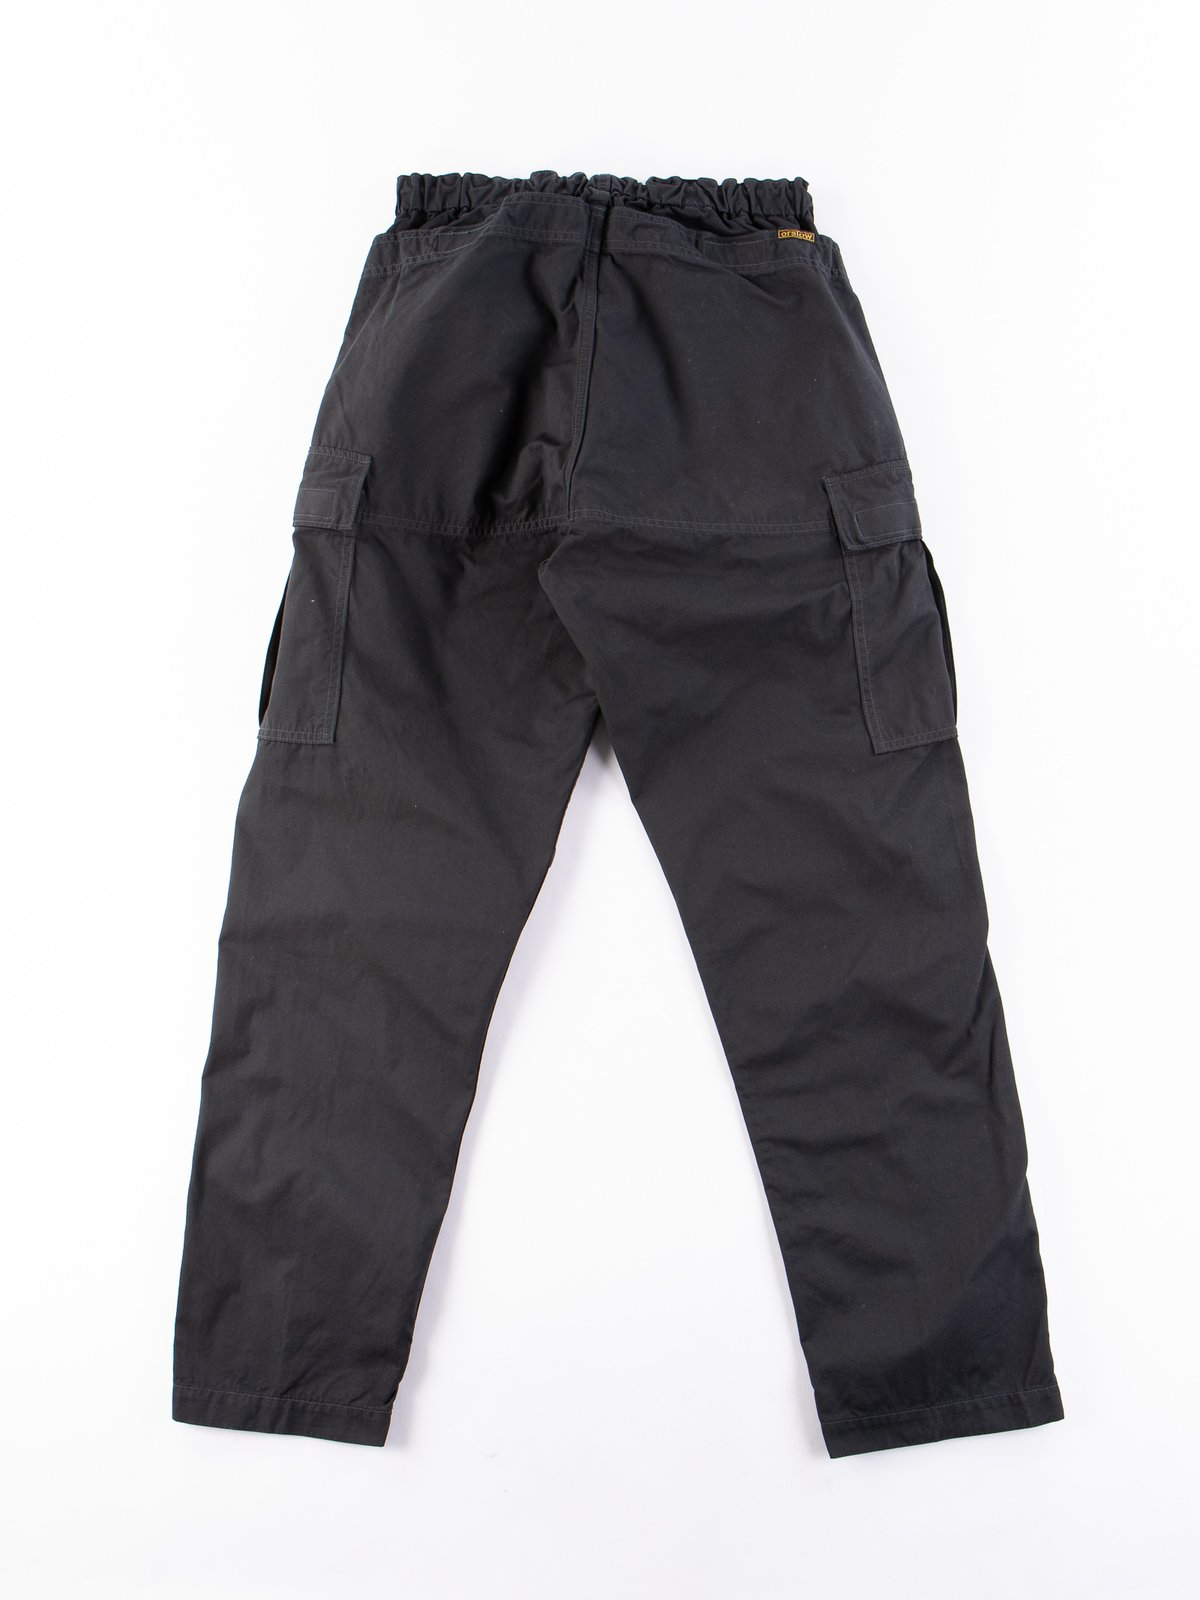 Grey Weather Cloth Easy Cargo Pant - Image 9